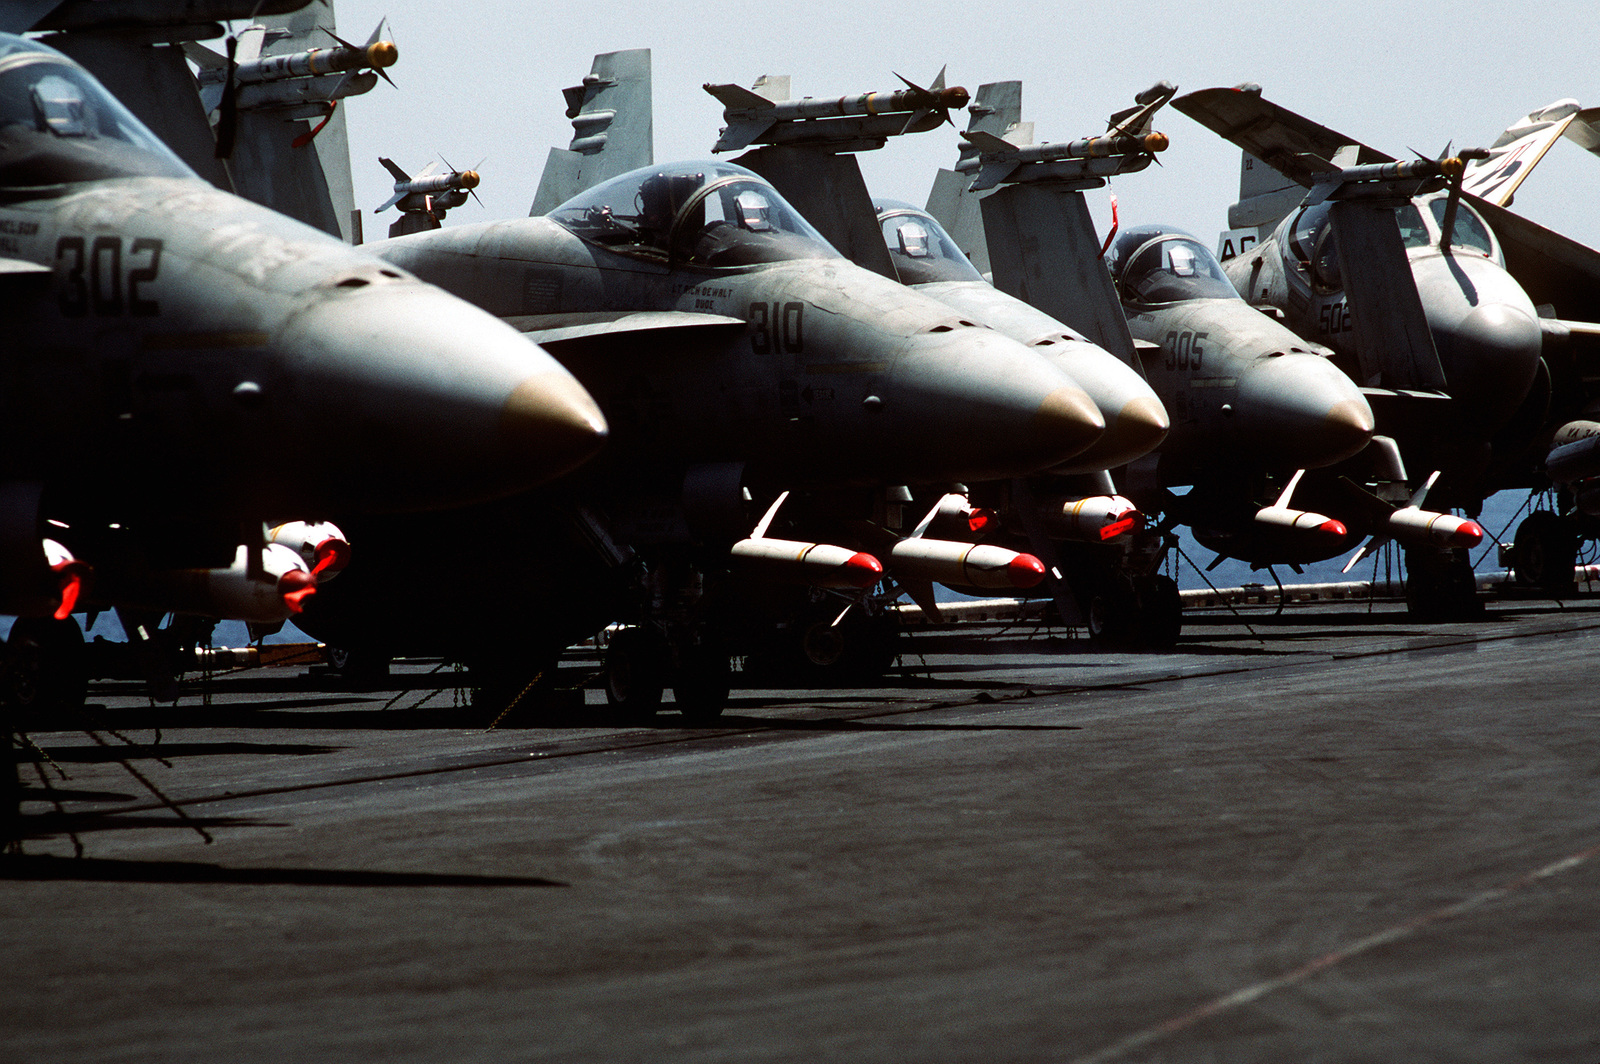 Strike Fighter Squadron 136 (VFA-136) F/A-18A Hornet aircraft and an Attack Squadron 34 (VA-34) A-6E Intruder aircraft, right, sit armed and ready on the flight deck of the nuclear-powered aircraft carrier USS DWIGHT D. EISENHOWER (CVN-69). The aircraft are armed with Mark 20 Rockeye II cluster bombs and AGM-88A HARM anti-radar missiles; the F/A-18 aircraft also carry AIM-9 Sidewinder missiles on their wing tips. The EISENHOWER is one of the U.S. Navy ships sent to the Persian Gulf in response to Iraq's invasion of Kuwait